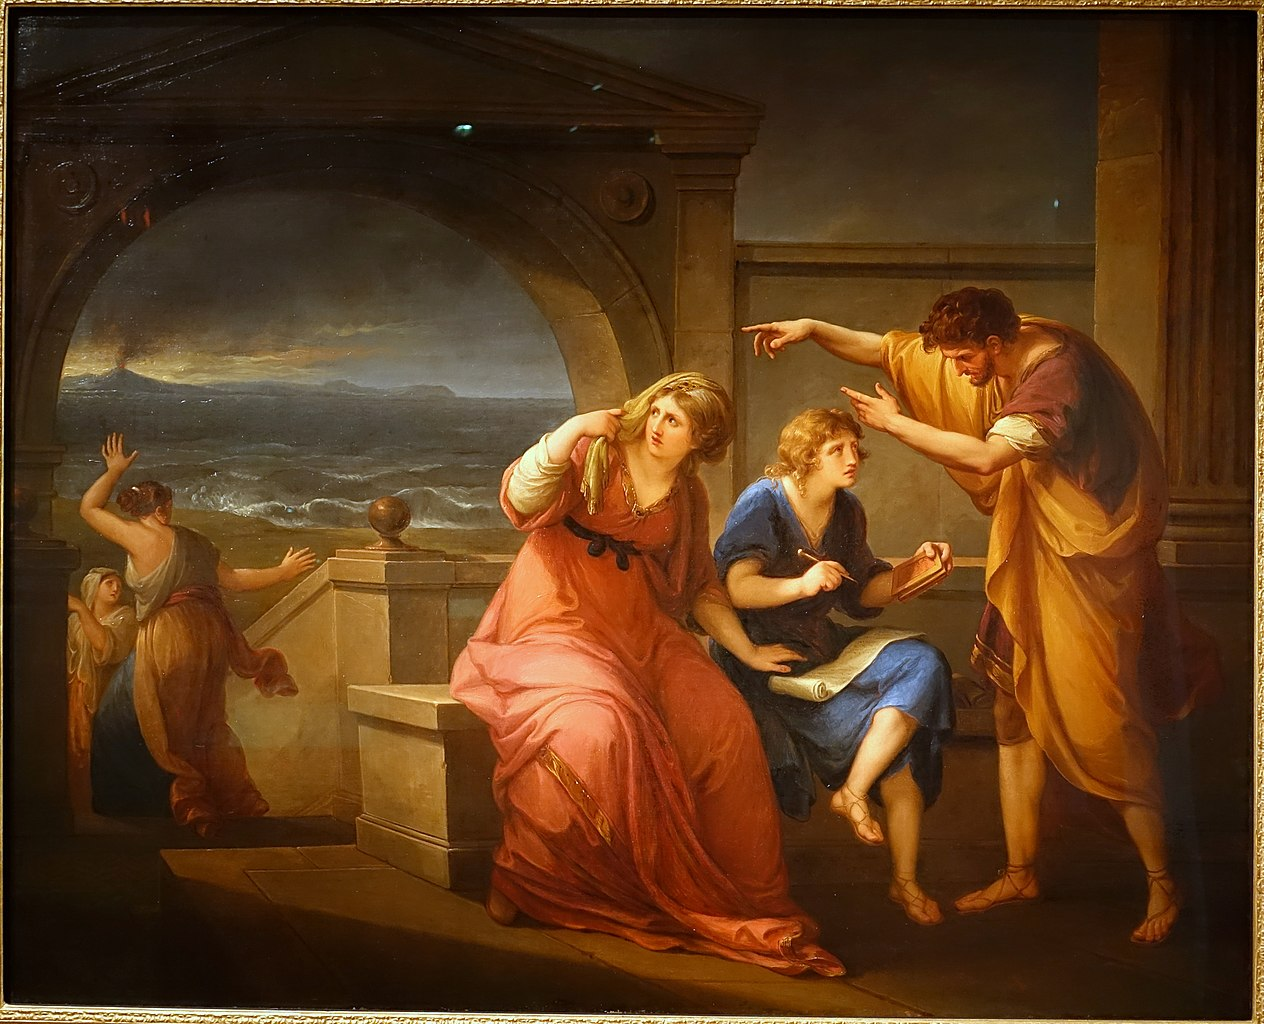 Angelica Kauffmann 1785 Bowles Pliny_the_Younger_and_his_Mother_at_Misenum,_79_A.D._103 x 127.5 Princeton_University_Art_Museum